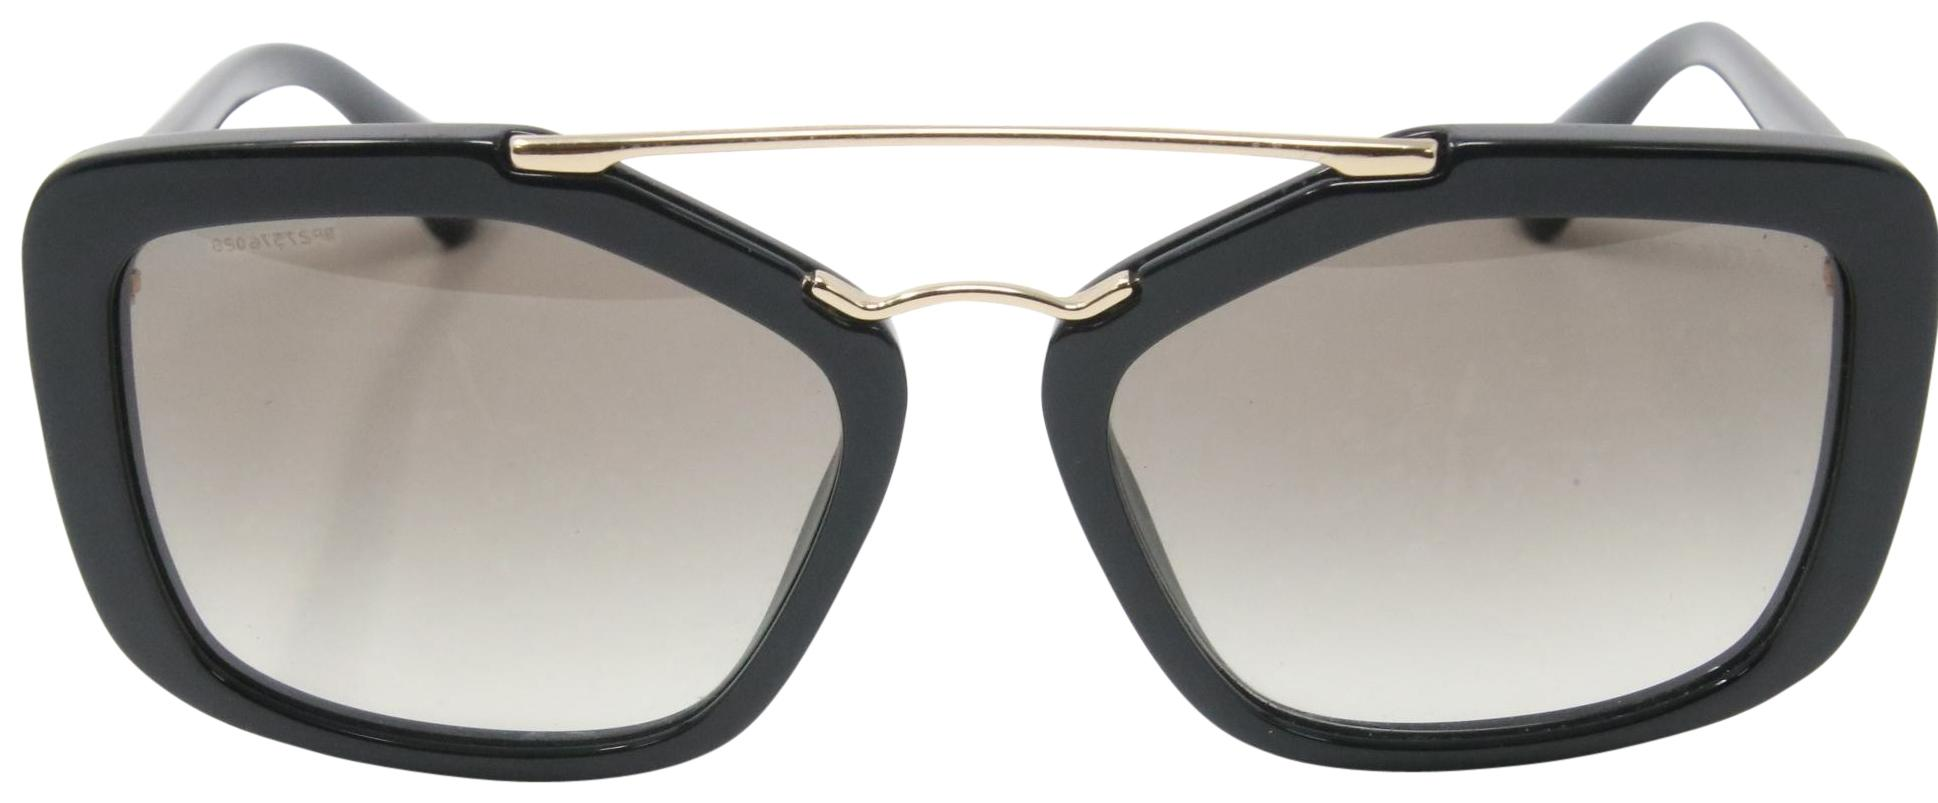 7022058677891 ... switzerland prada classic pilot cinema gold frame wire sunglasses spr  24r a7aeb 42b03